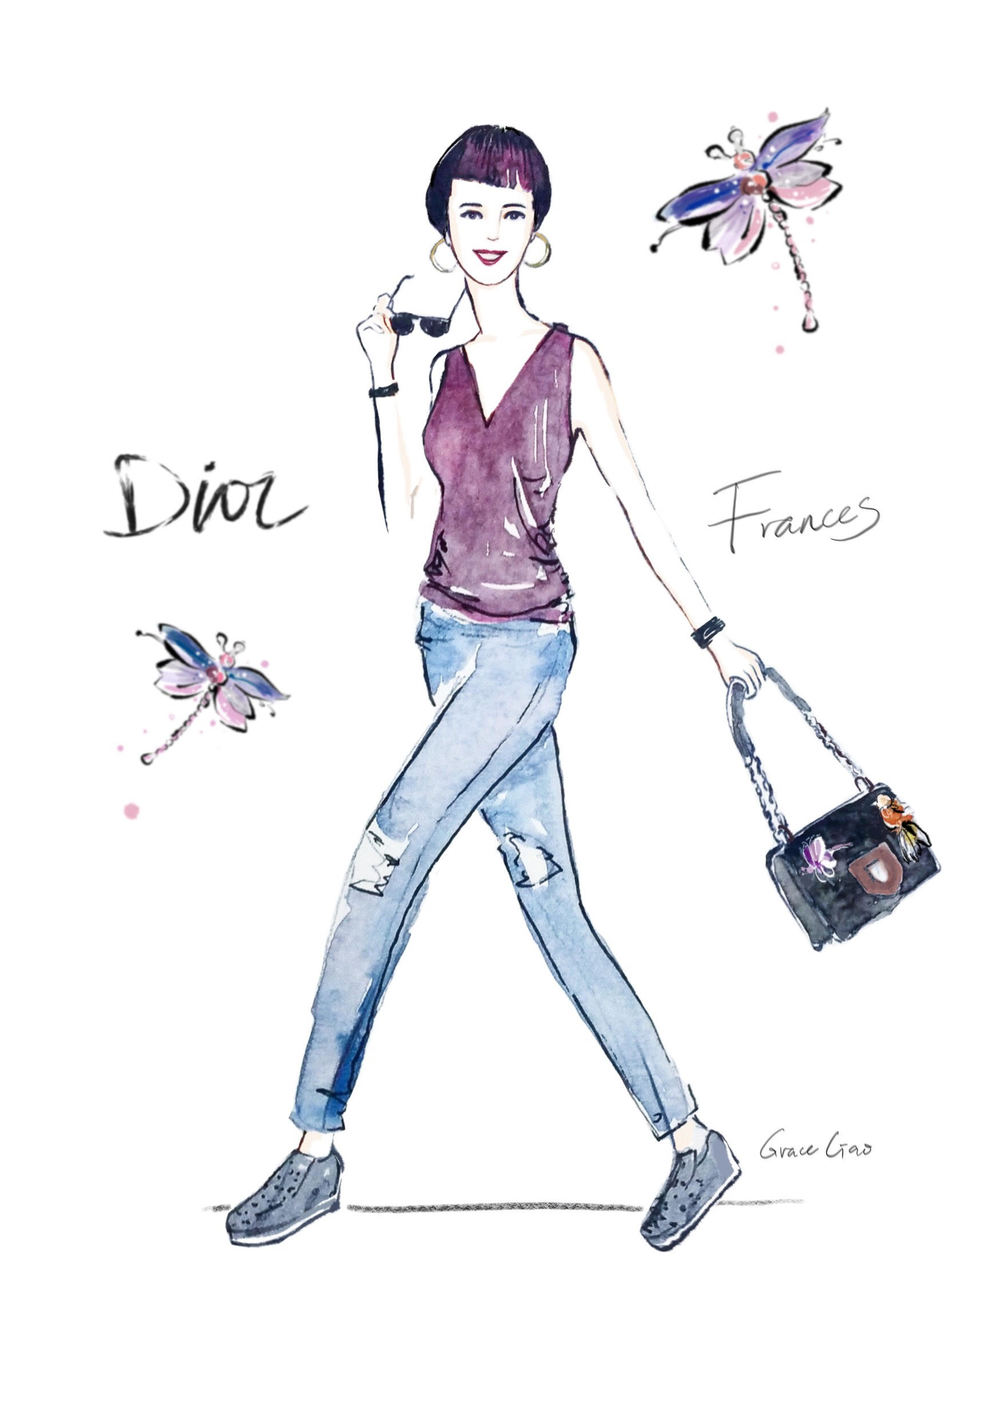 grace-ciao-fashion-illustrator-flower-artist-dior-diorama-club-bag-luxury-event-launch-1